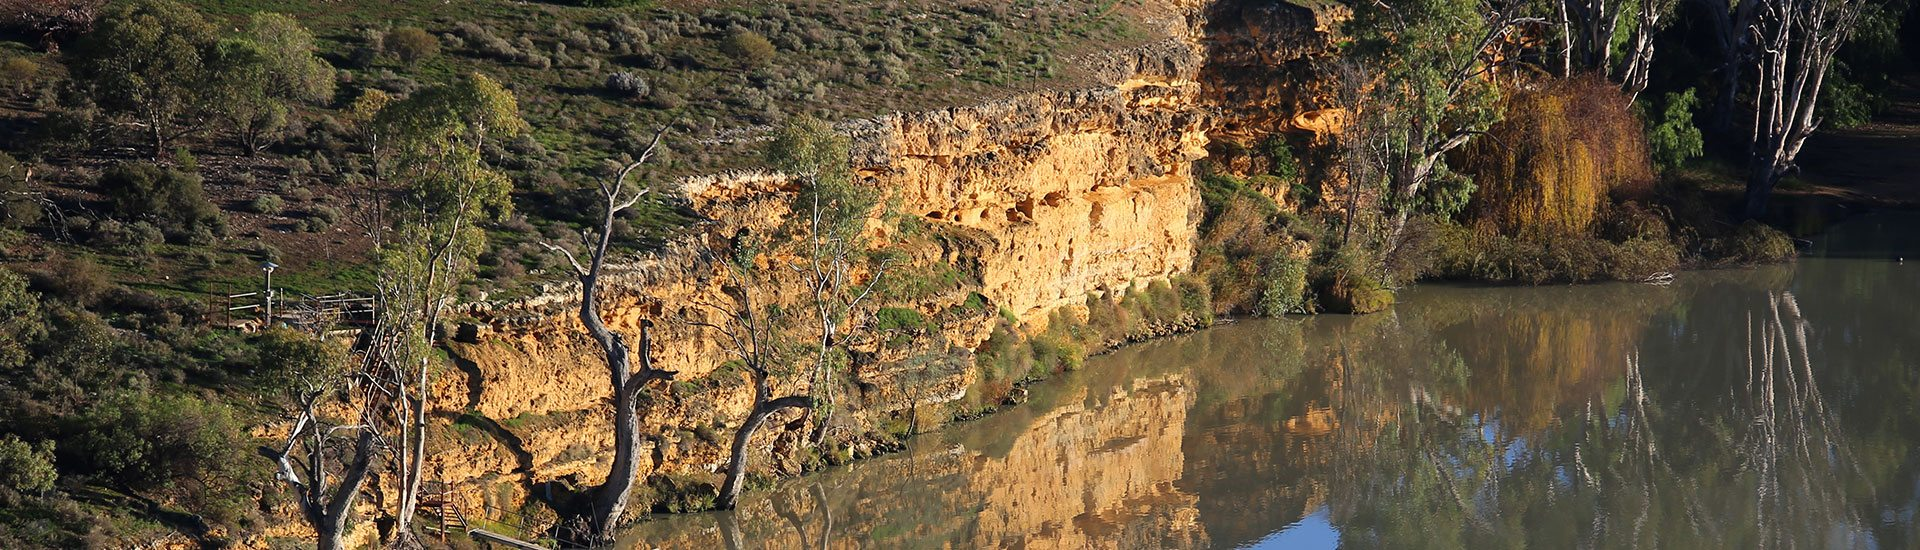 Murray River scenery from a Balloon Adventures hot air balloon.